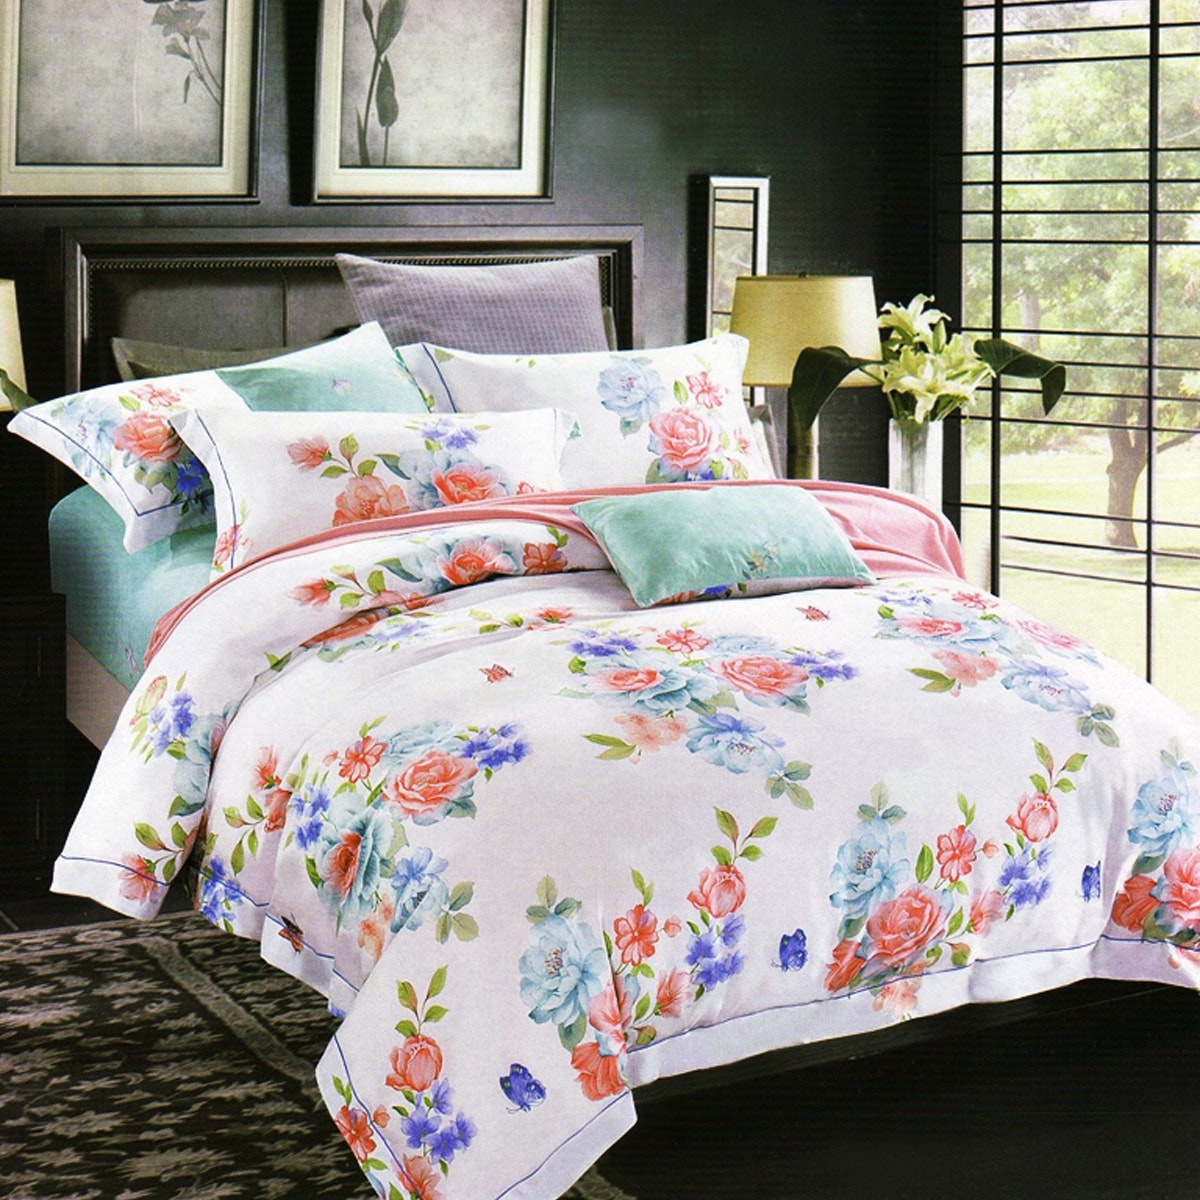 Sleep Buddy Set Sprei dan Bed Cover White Floral Cotton Sateen 180x200x30